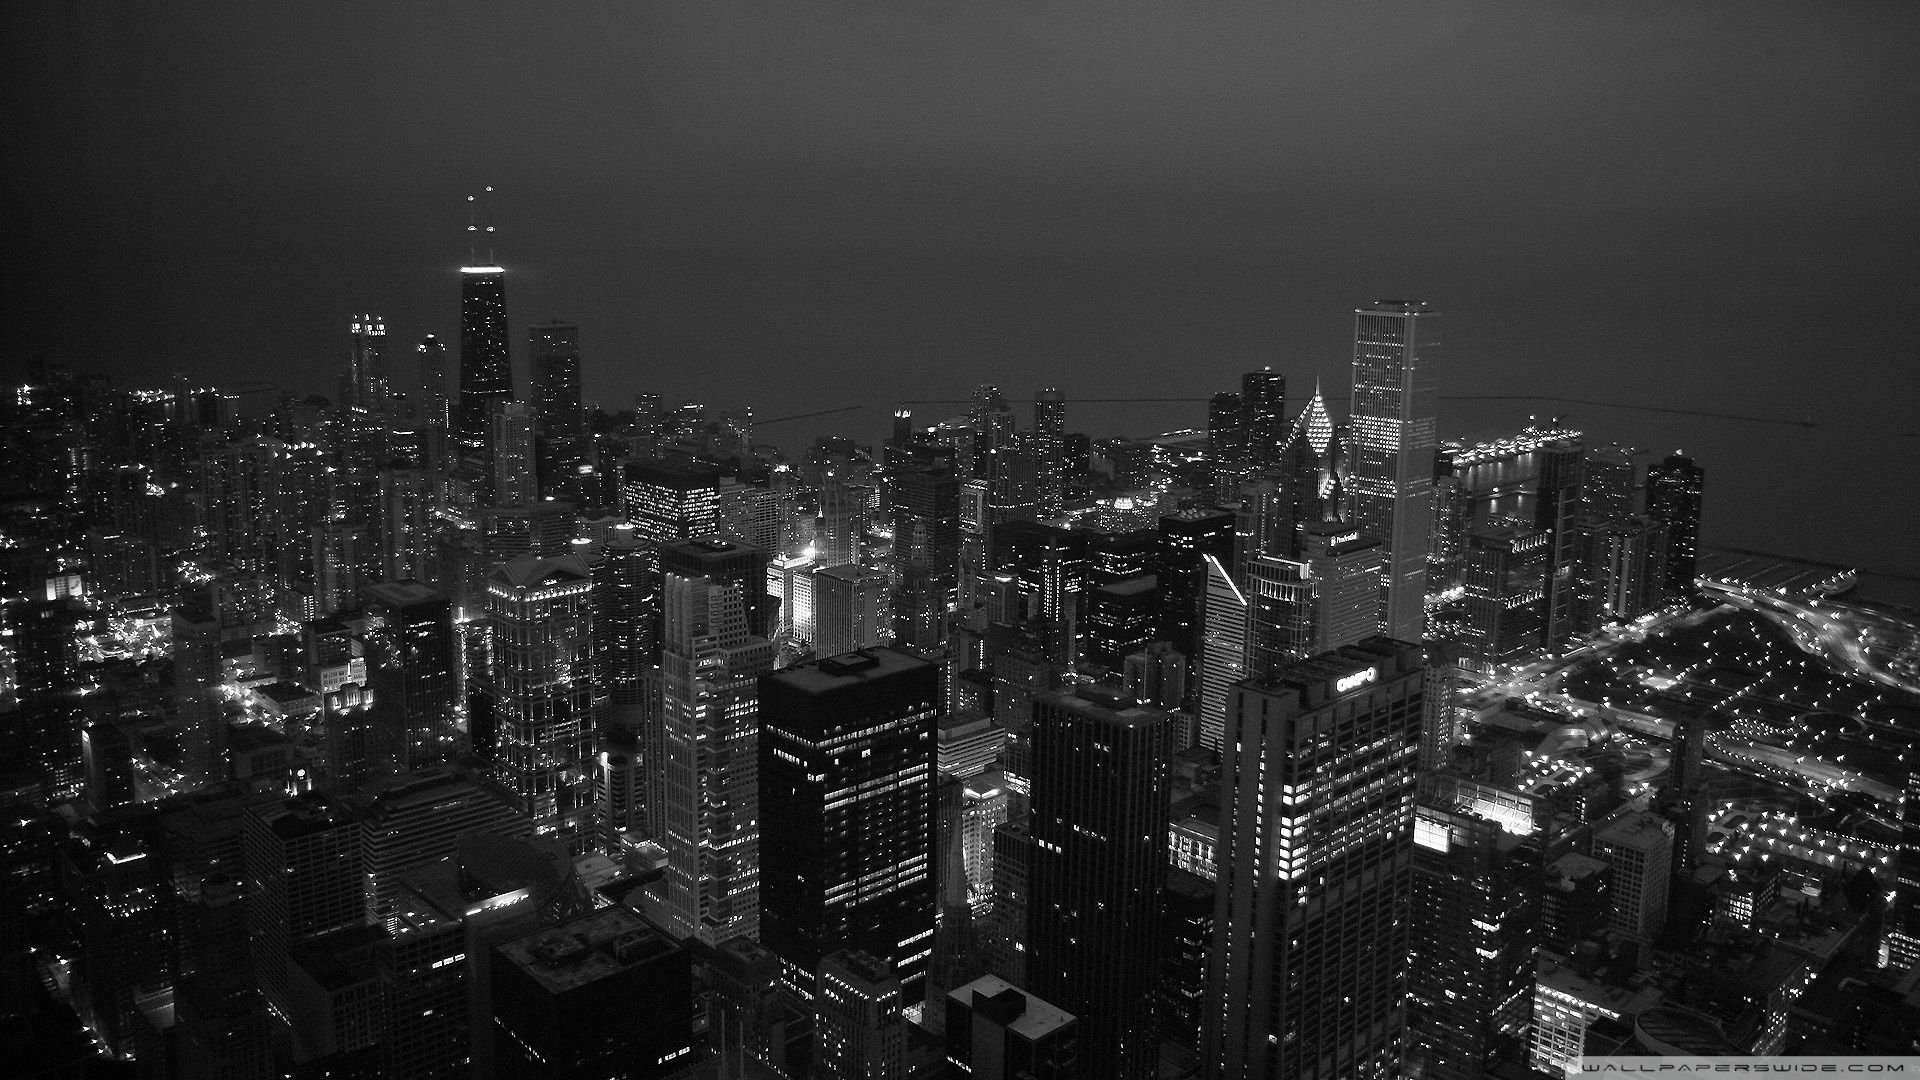 Black And White City Wallpapers Top Free Black And White City Backgrounds Wallpaperaccess